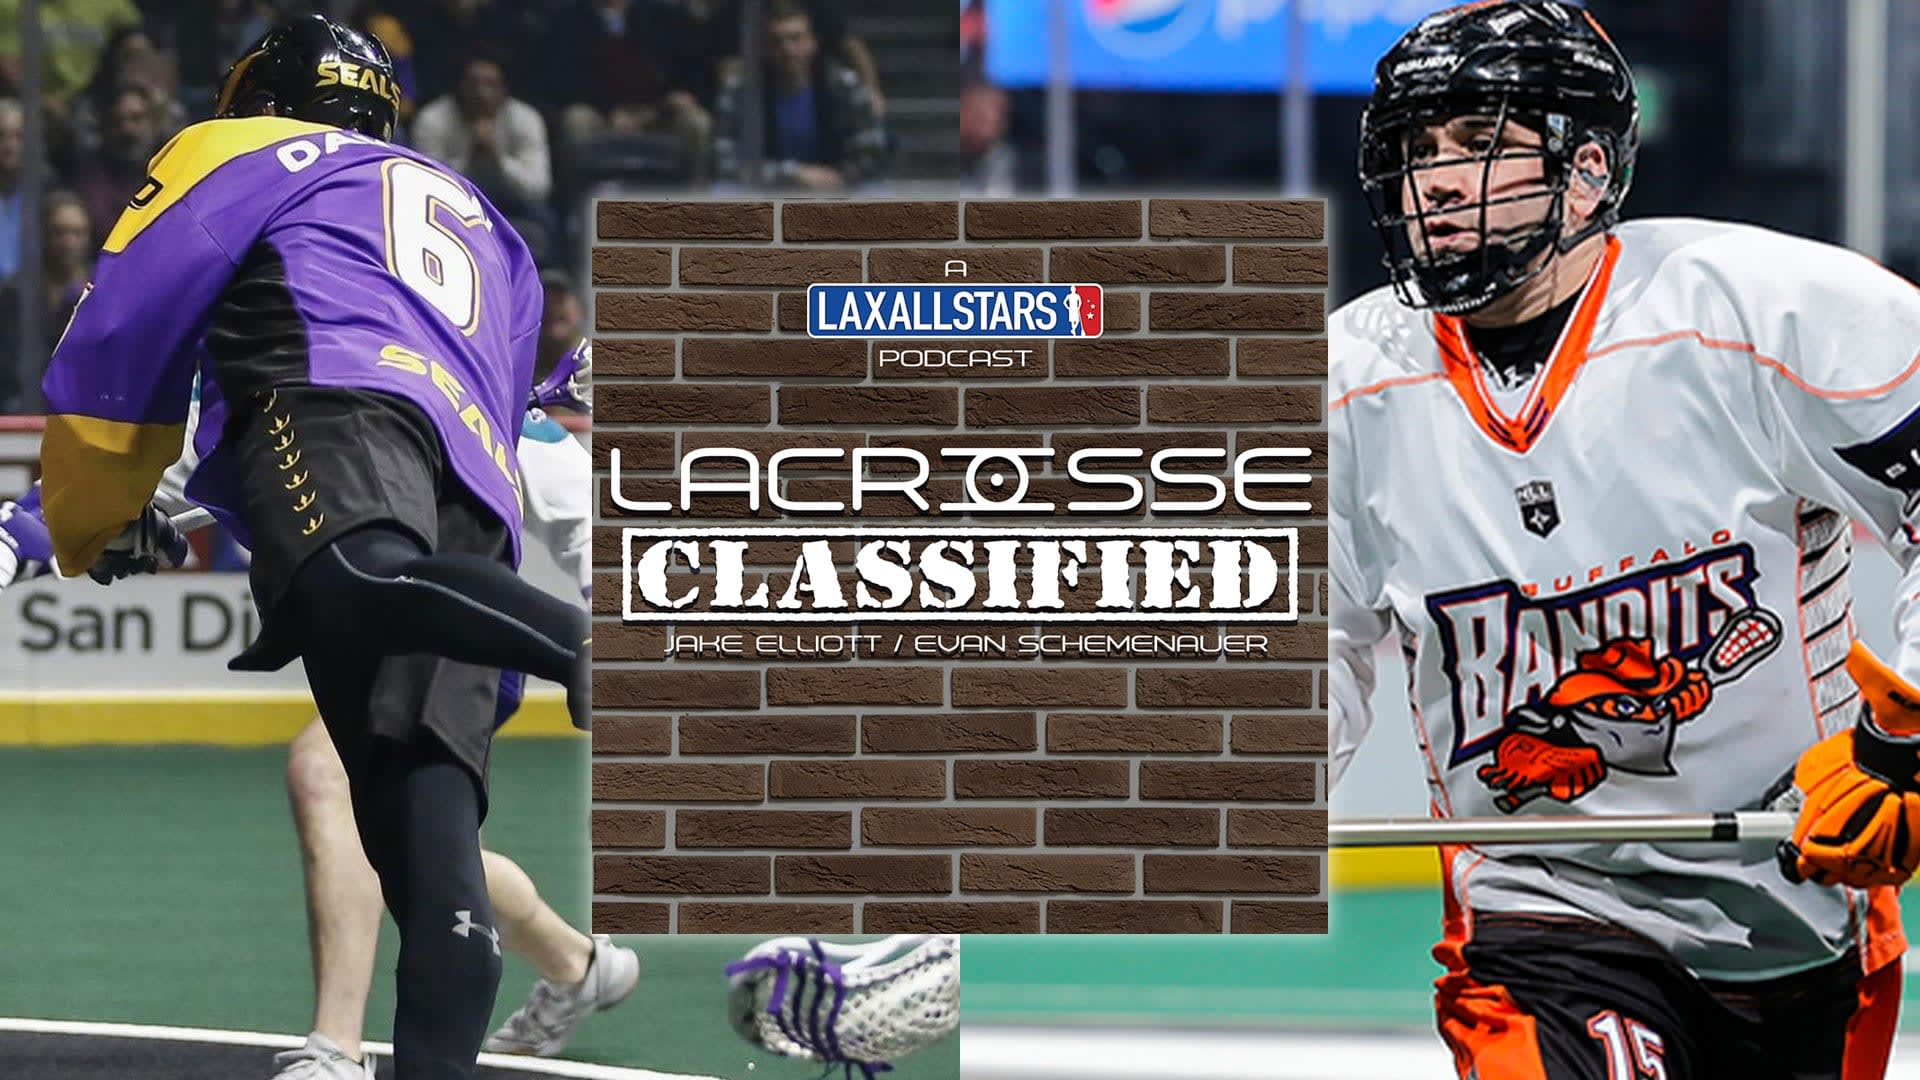 Shawn Evans and Dan Dawson on Lacrosse Classified Podcast